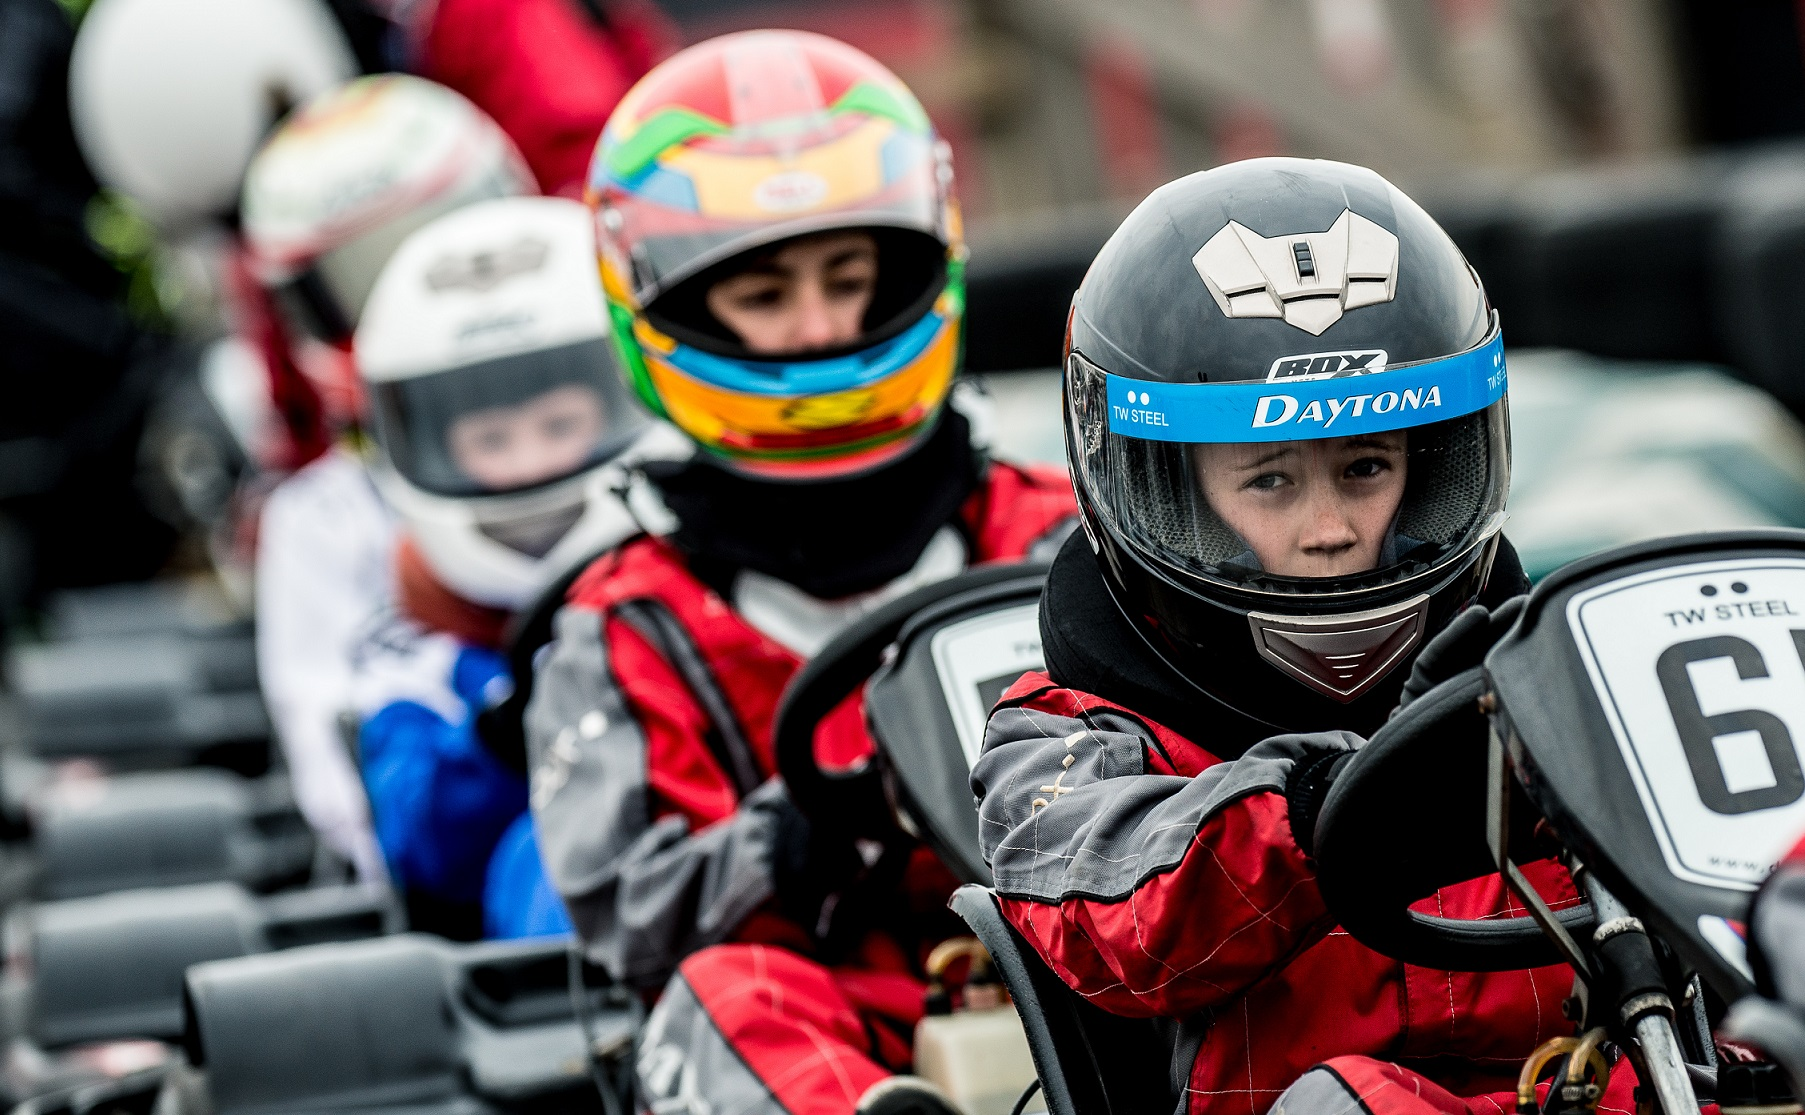 Junior & Bambino Karting